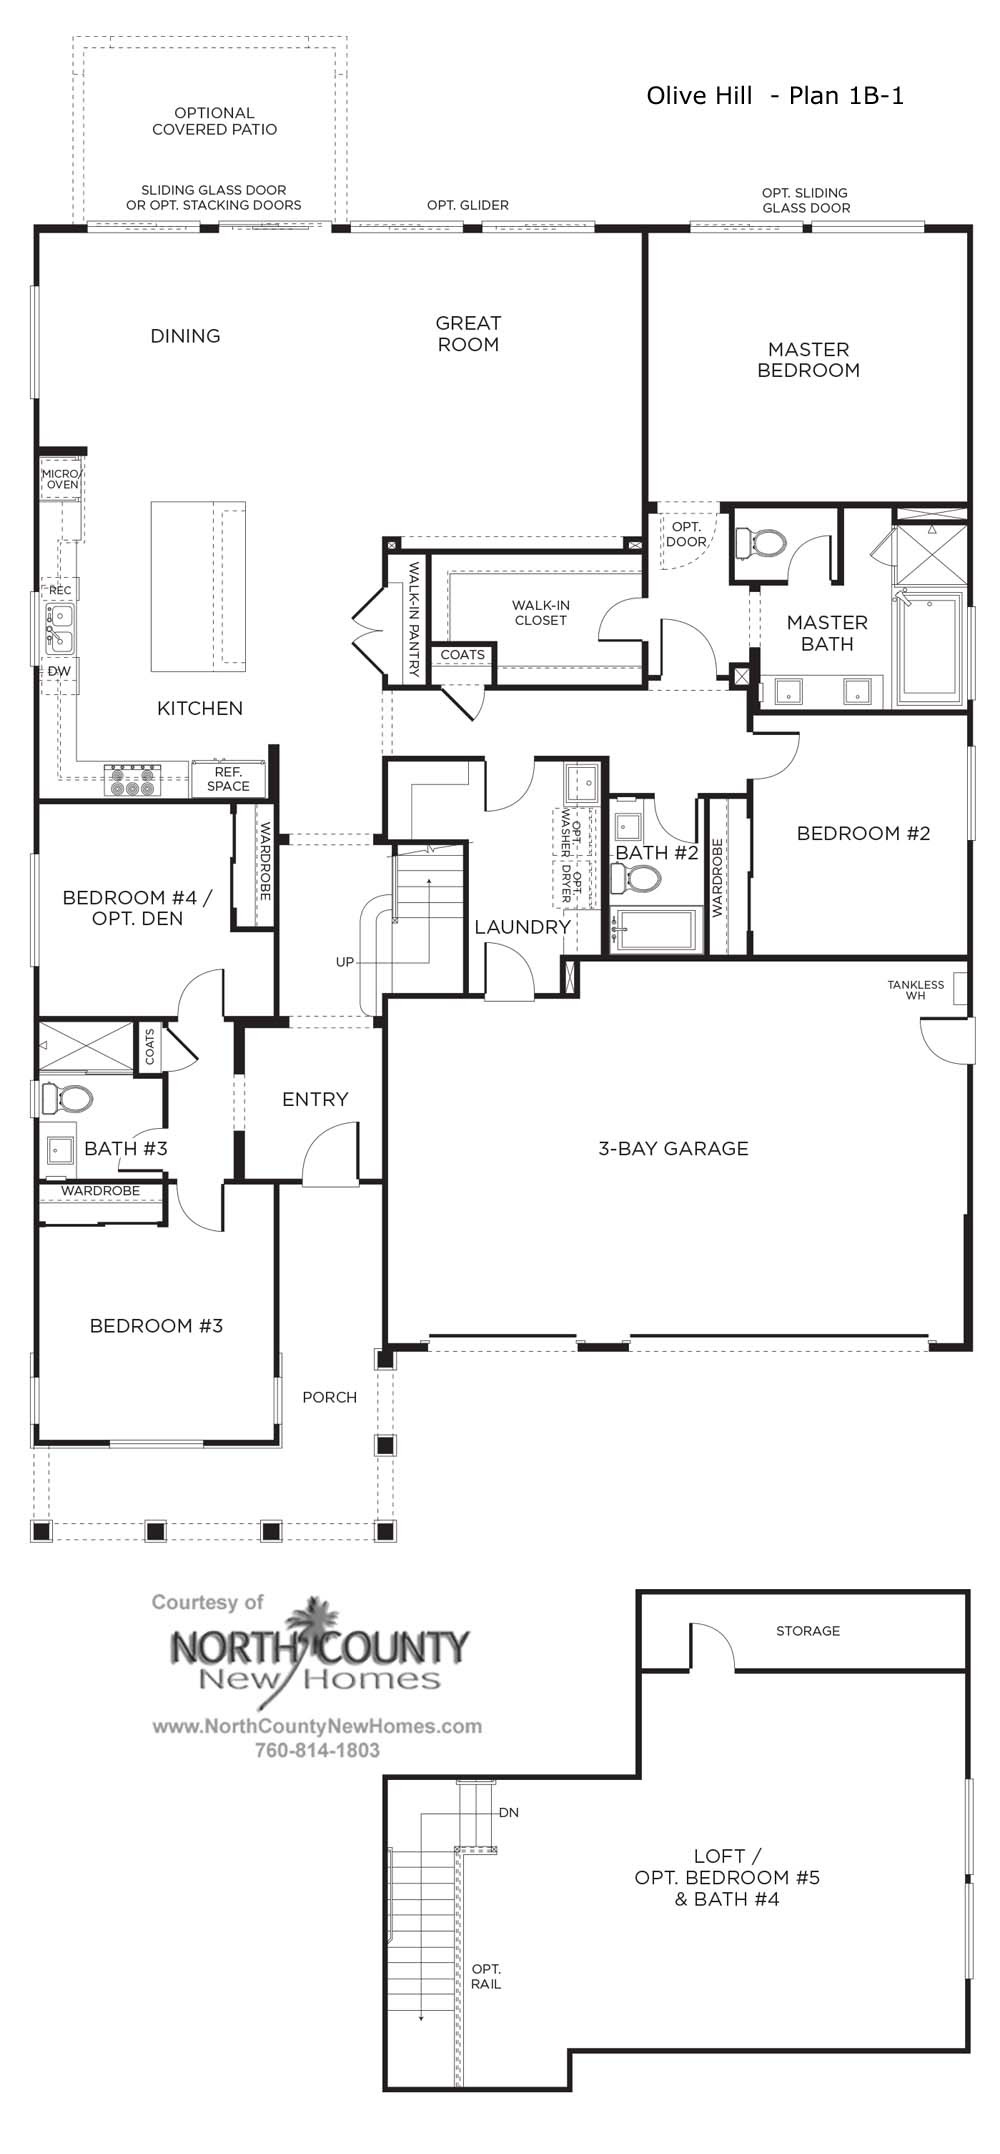 olive hill new homes in bonsall floor plan 1a